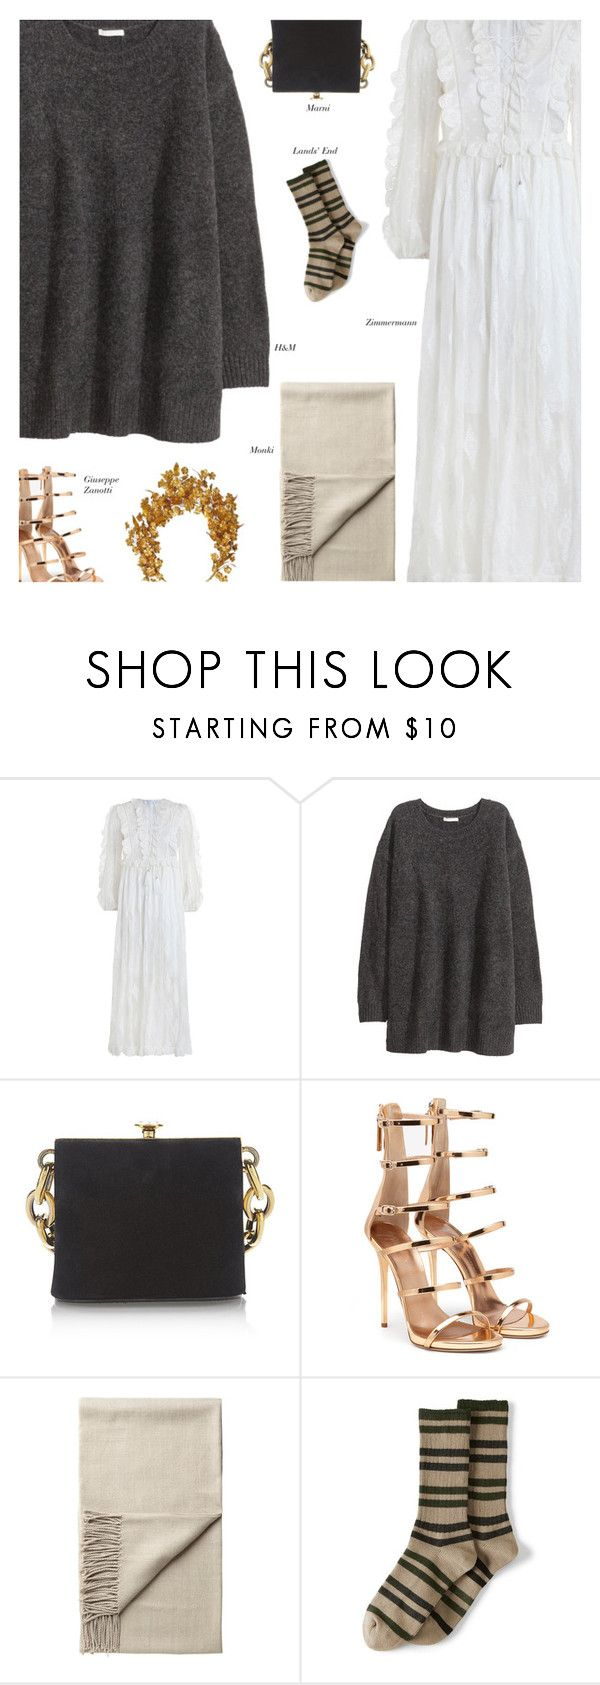 """Untitled #4647"" by amberelb ❤ liked on Polyvore featuring Zimmermann, Marni, Monki and Lands' End"